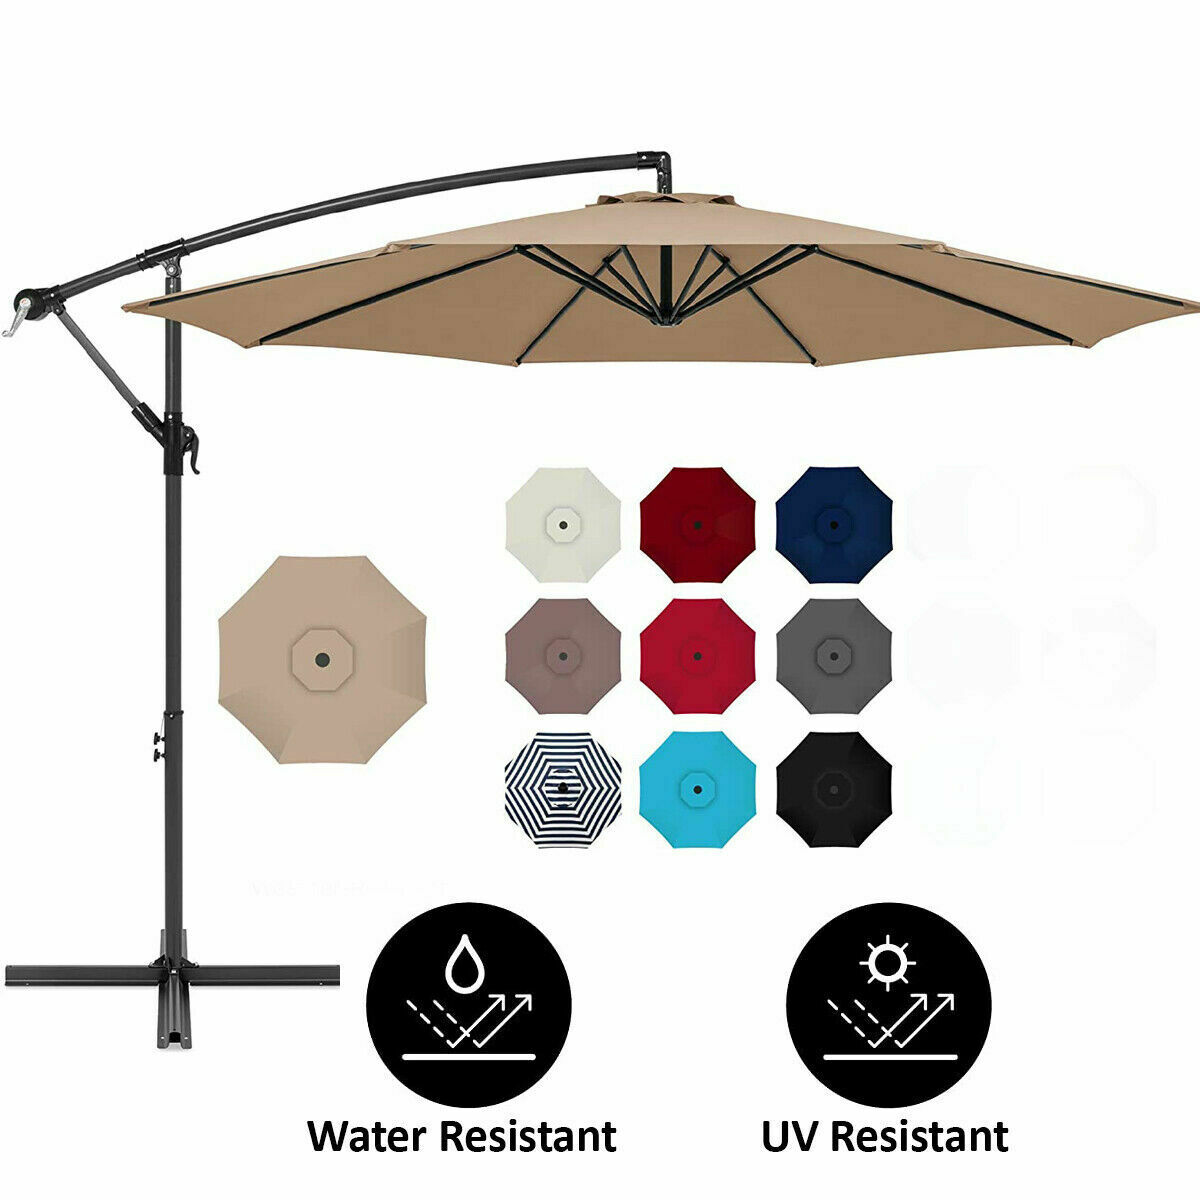 10 FT PATIO UMBRELLA OFFSET HANGING FOLDING SUN SHADE CANTILEVER W/CROSS BASE Garden Structures & Shade